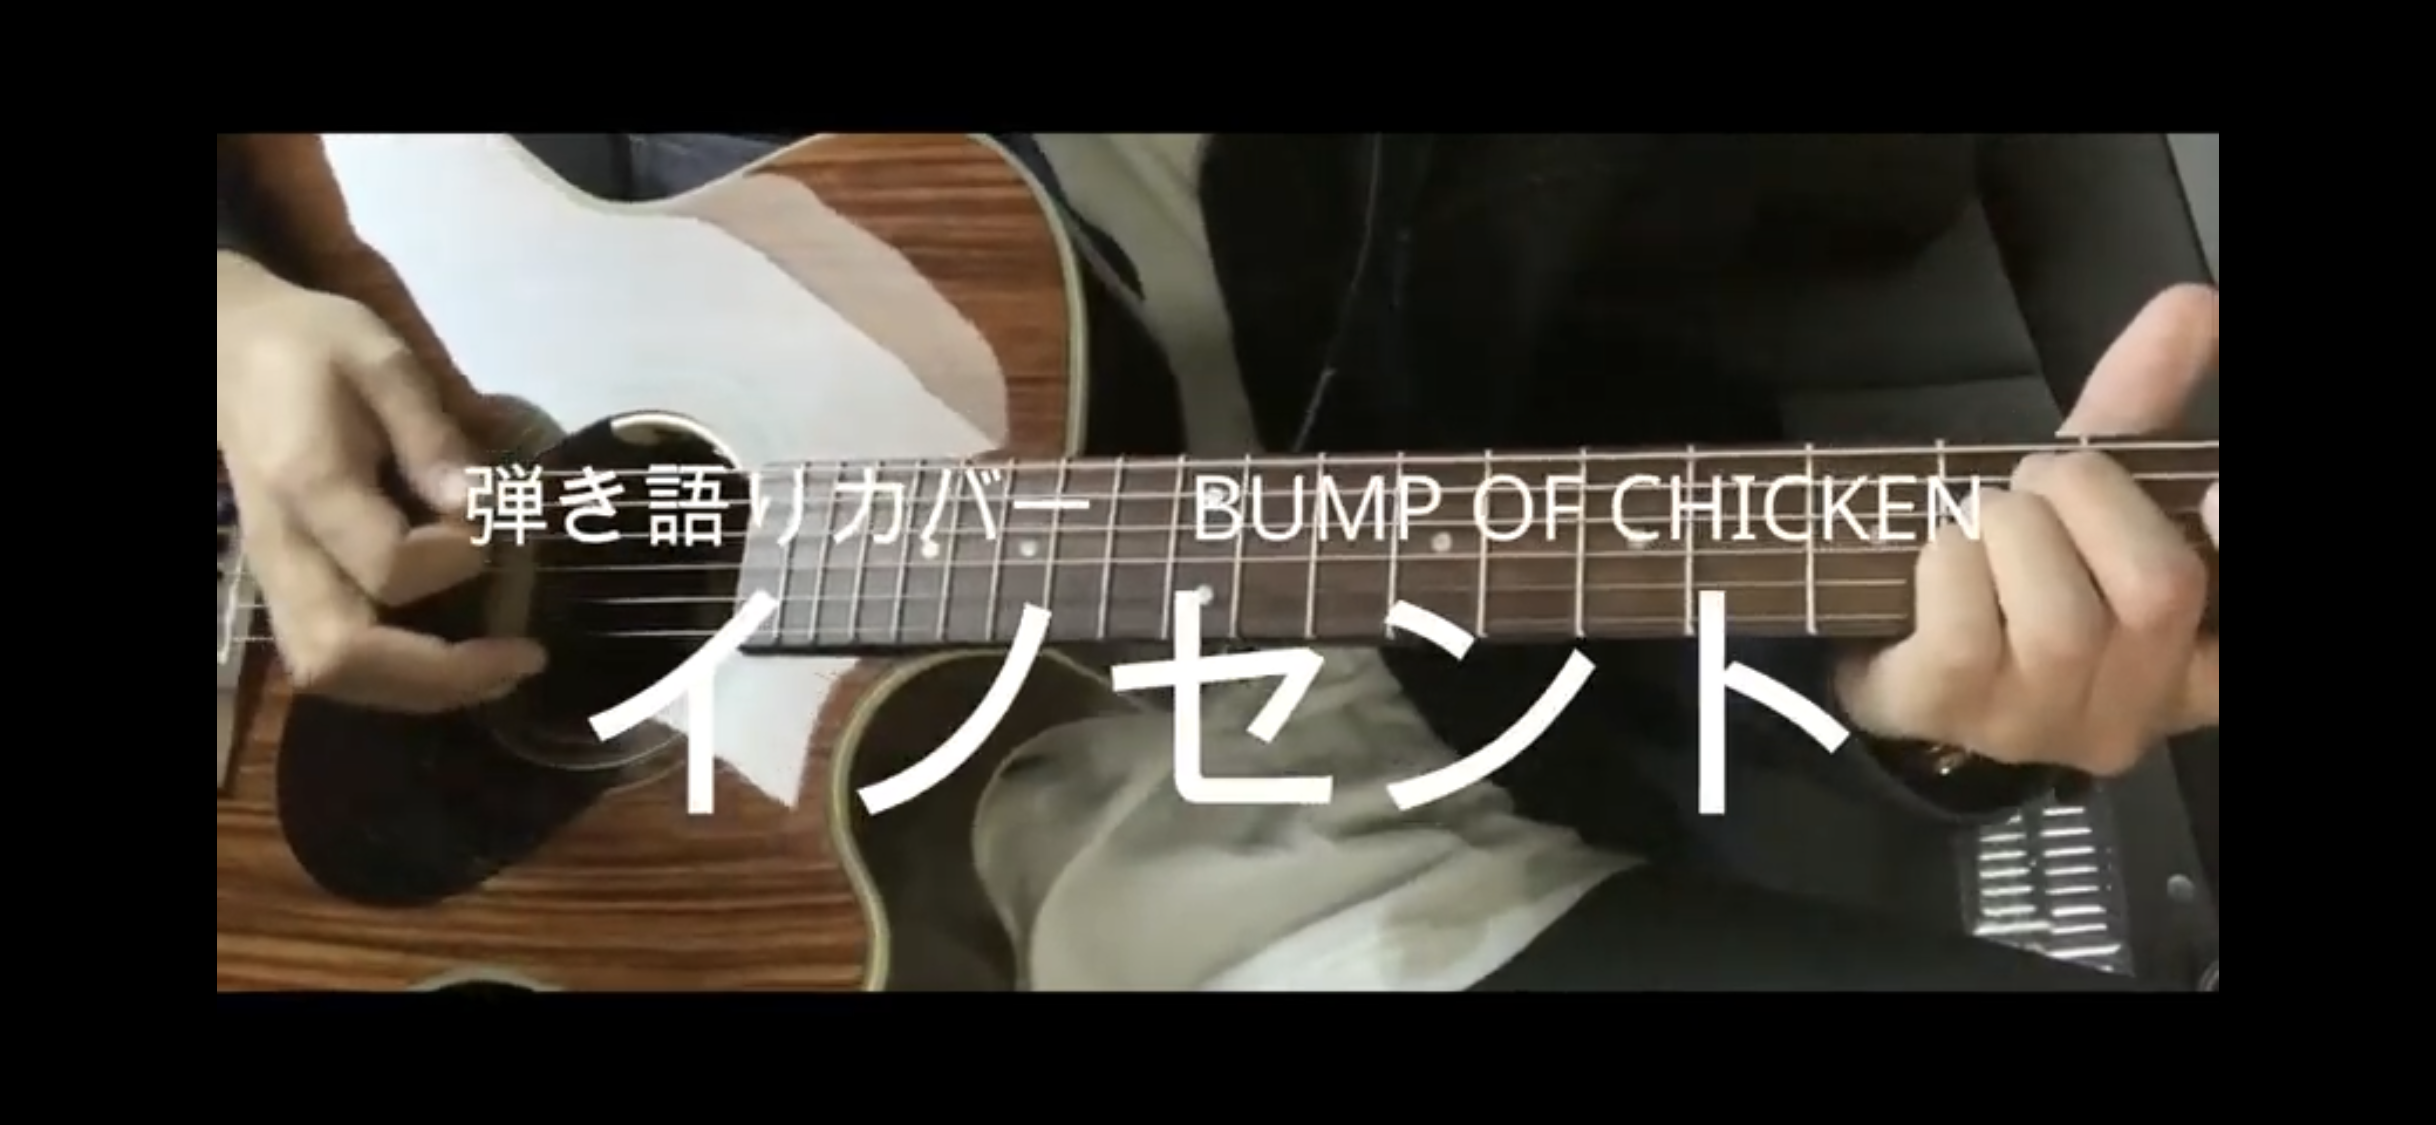 BUMP OF CHICKEN イノセント